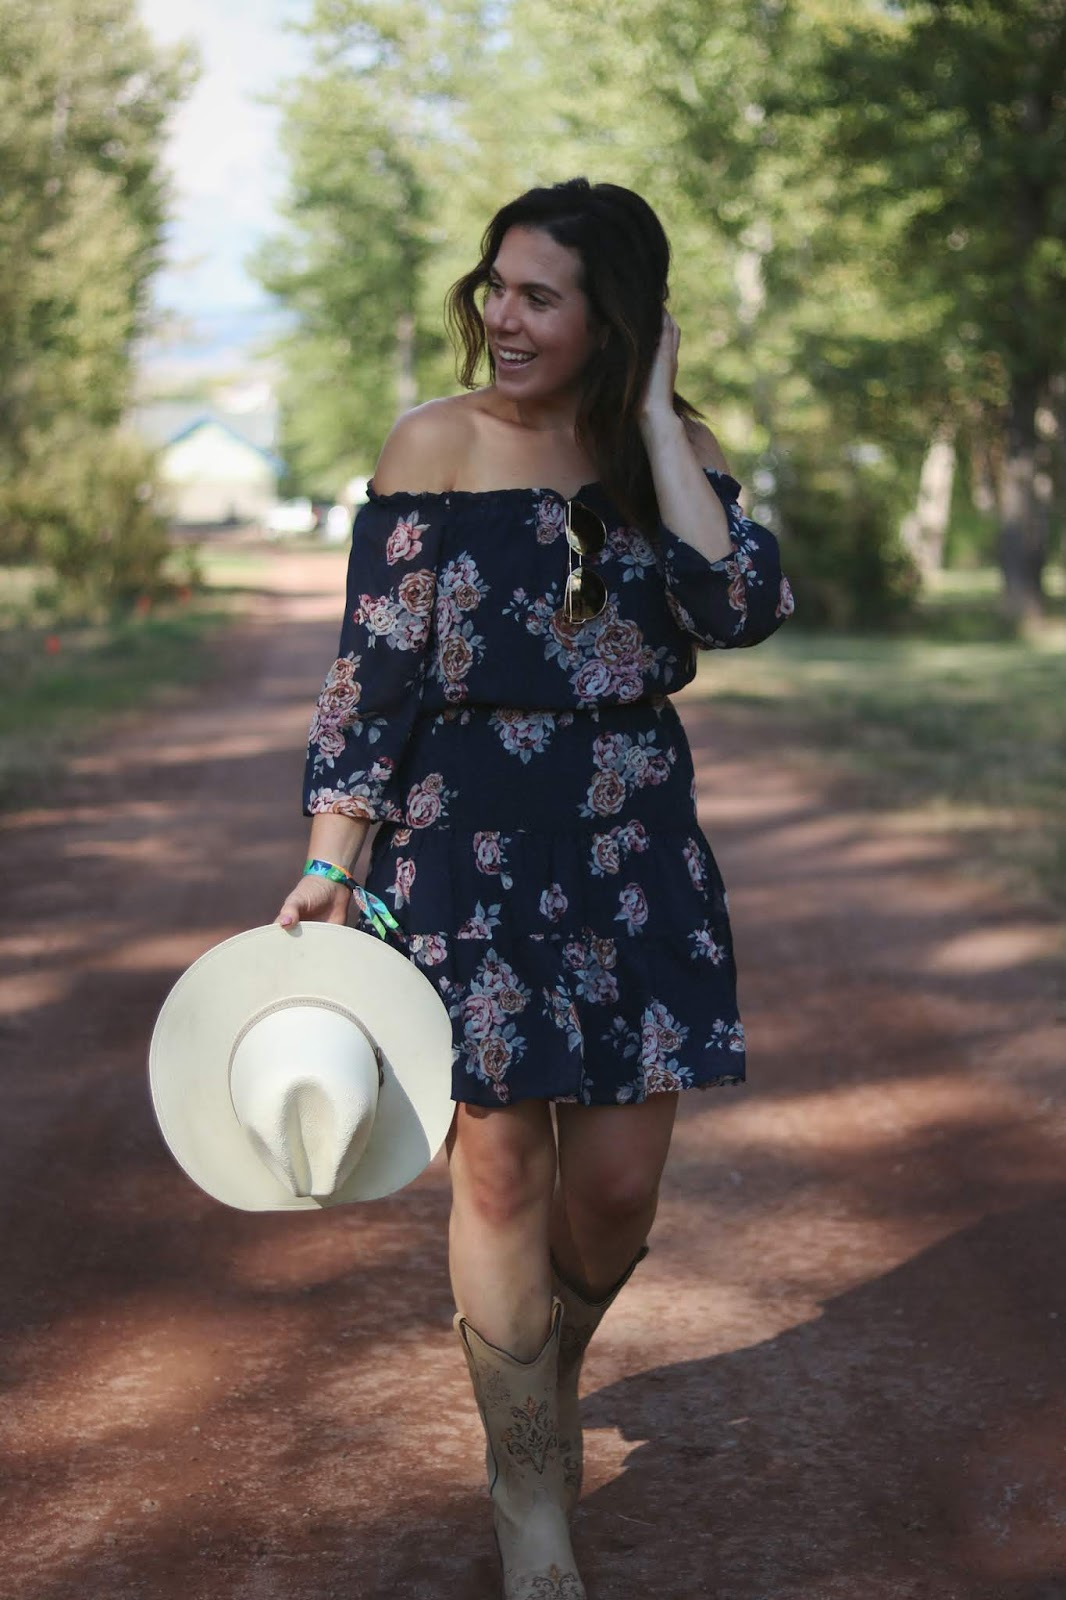 le chateau flower dress outfit Cowboy boots outfit country music festival